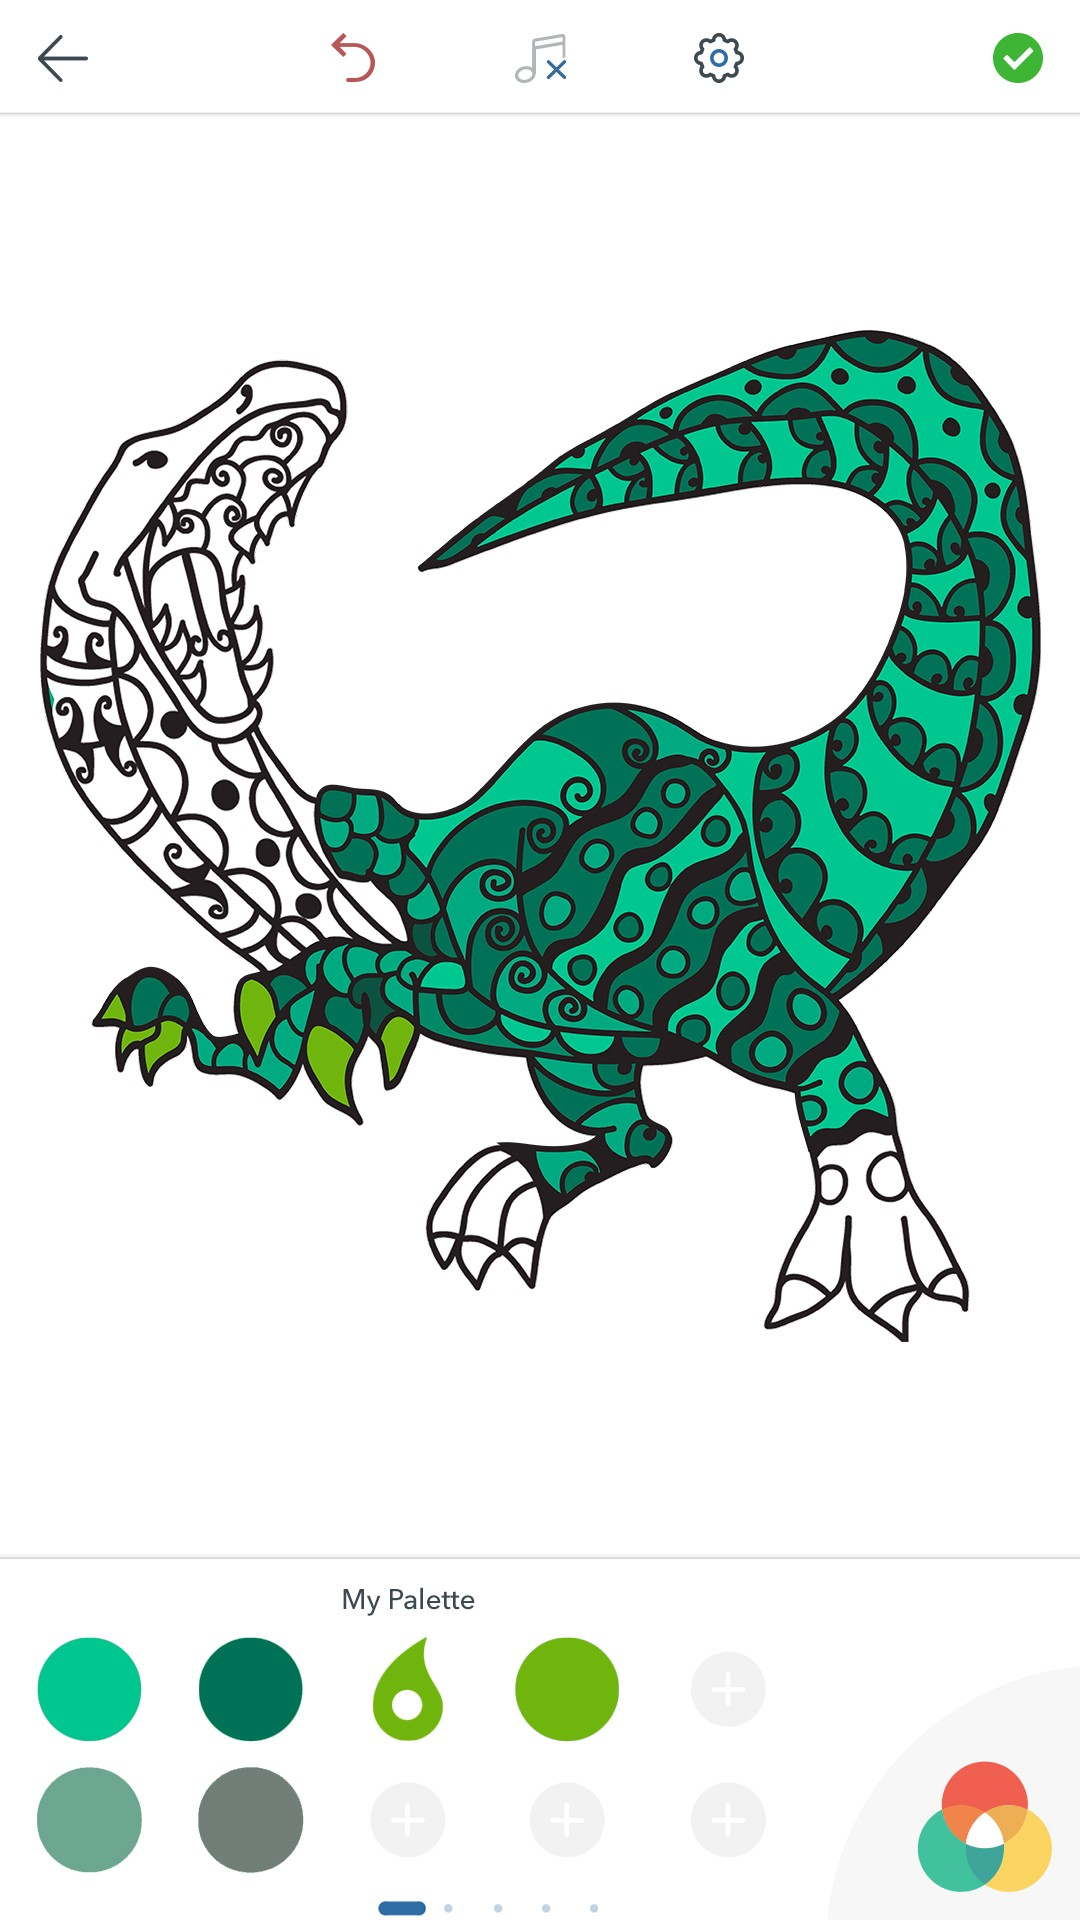 Dinosaur online coloring game - a-k-b.info